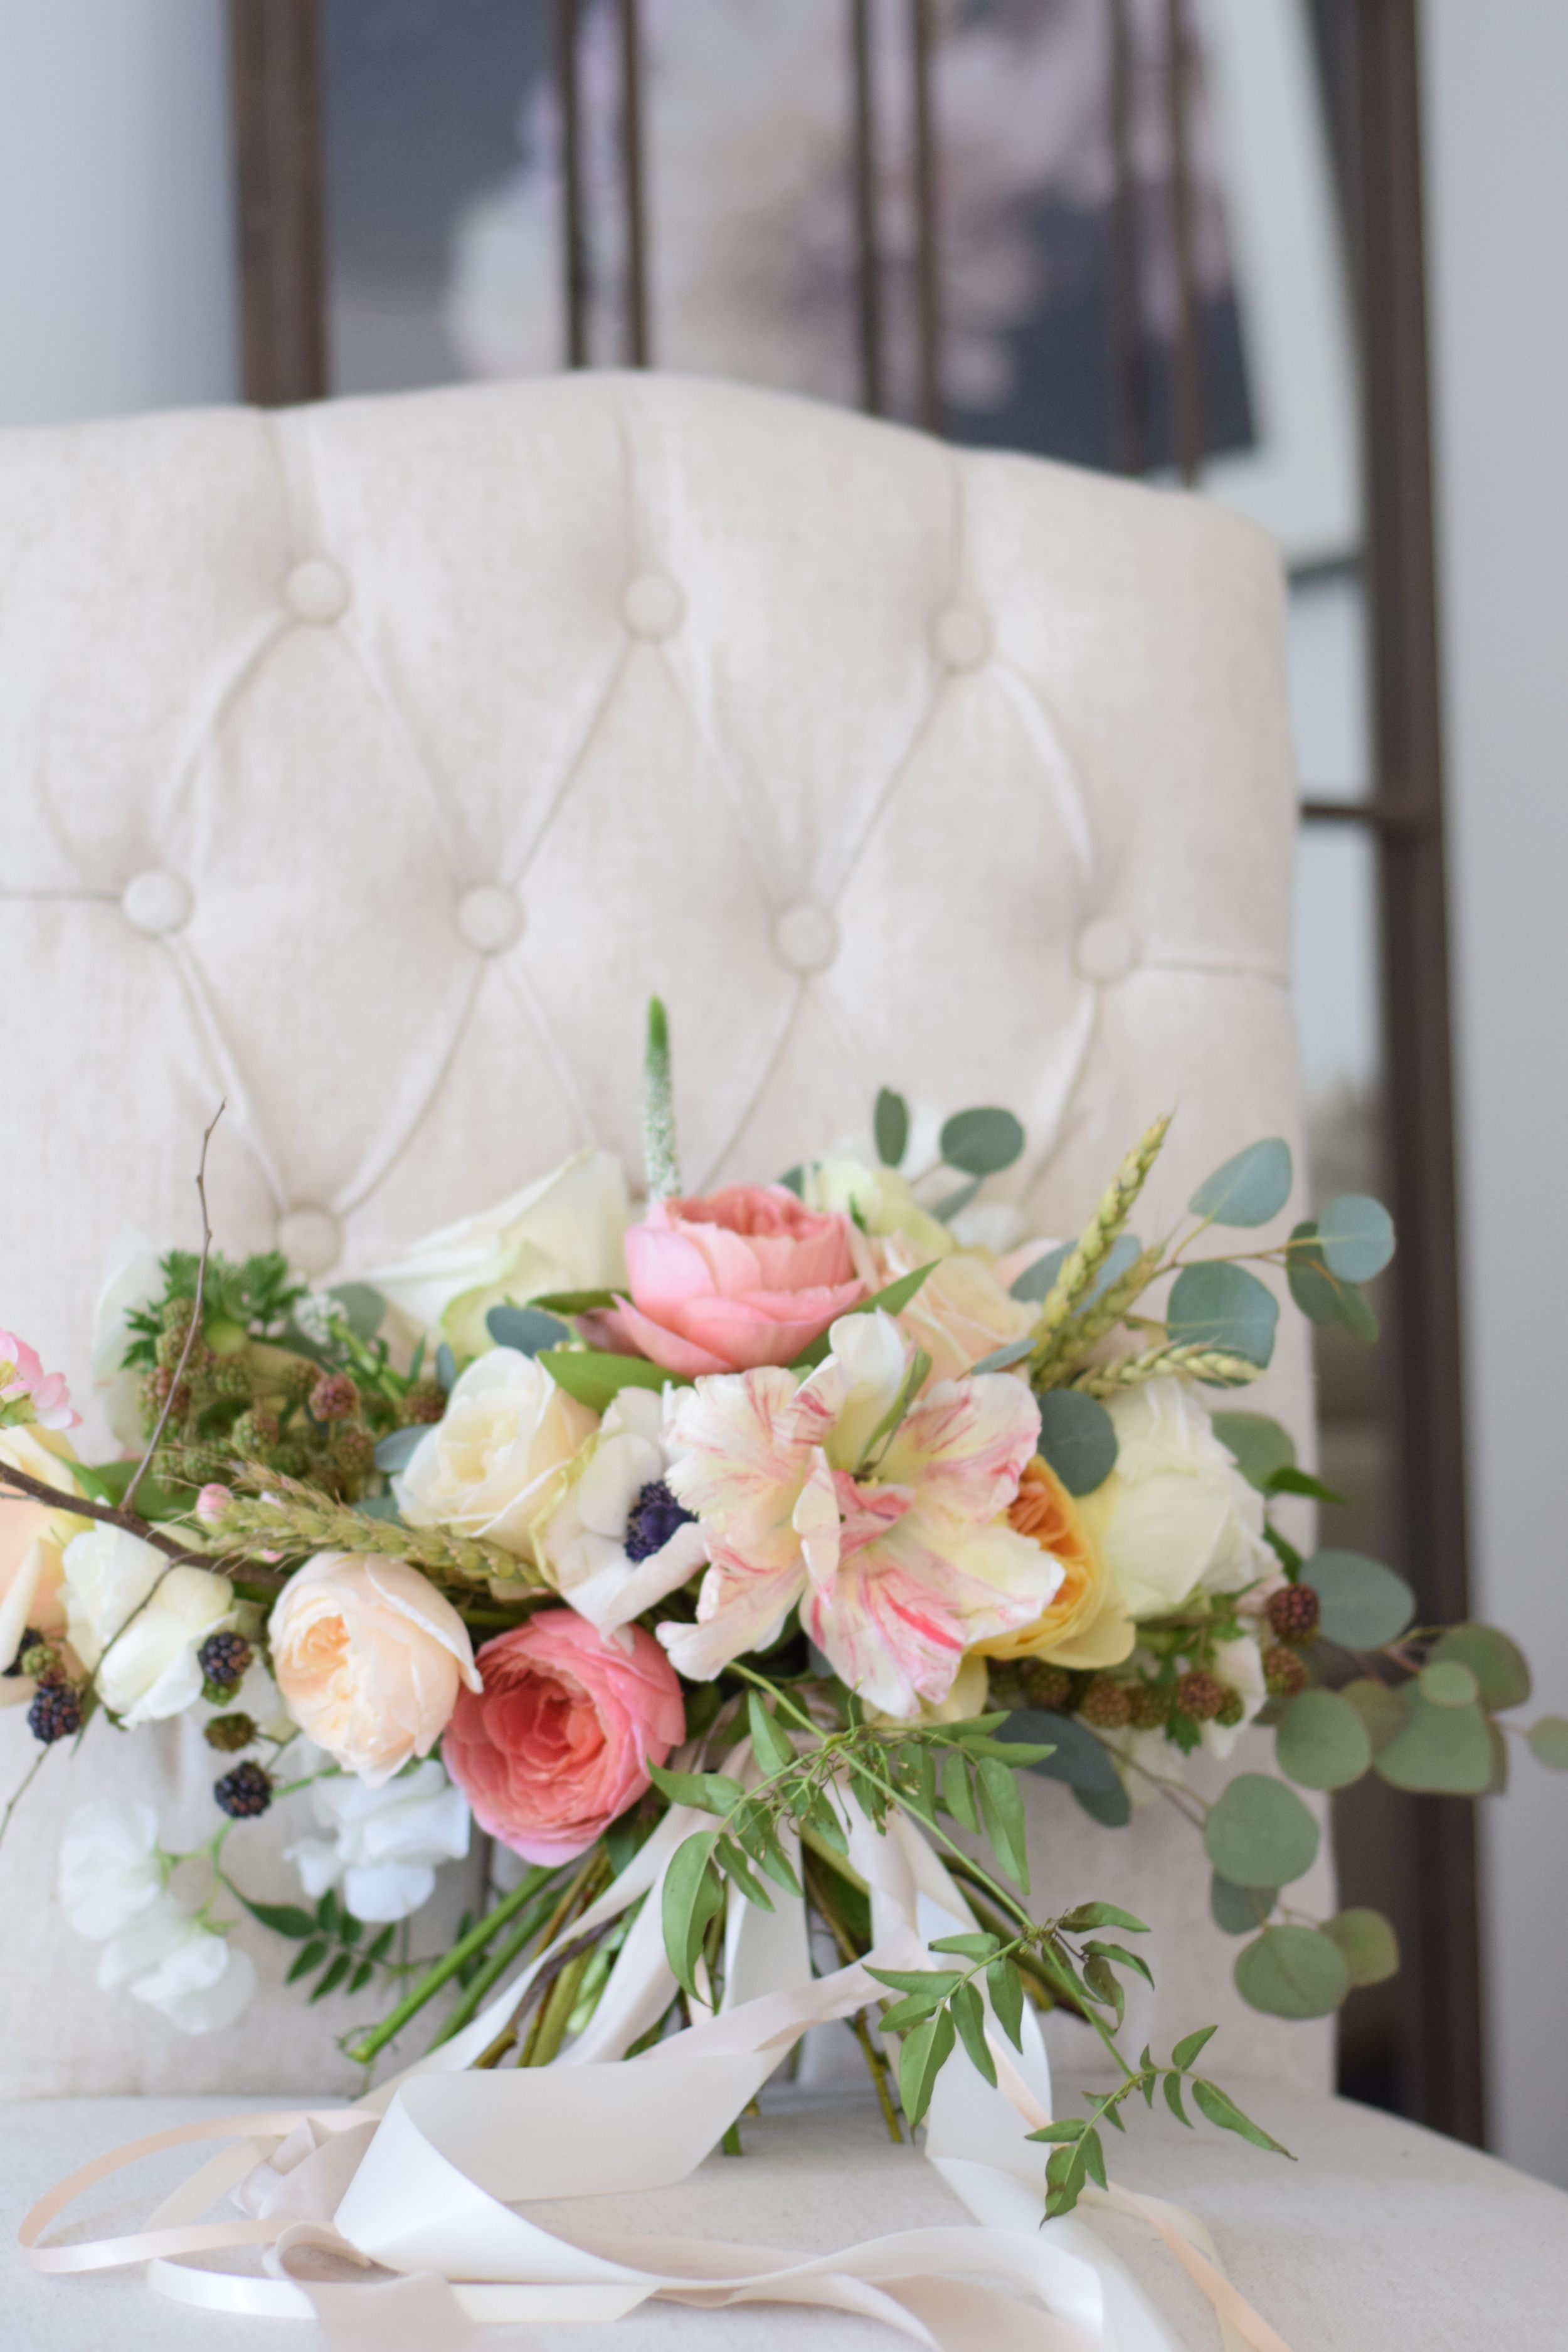 Blush, white and green are the star colors in this bridal bouquet.